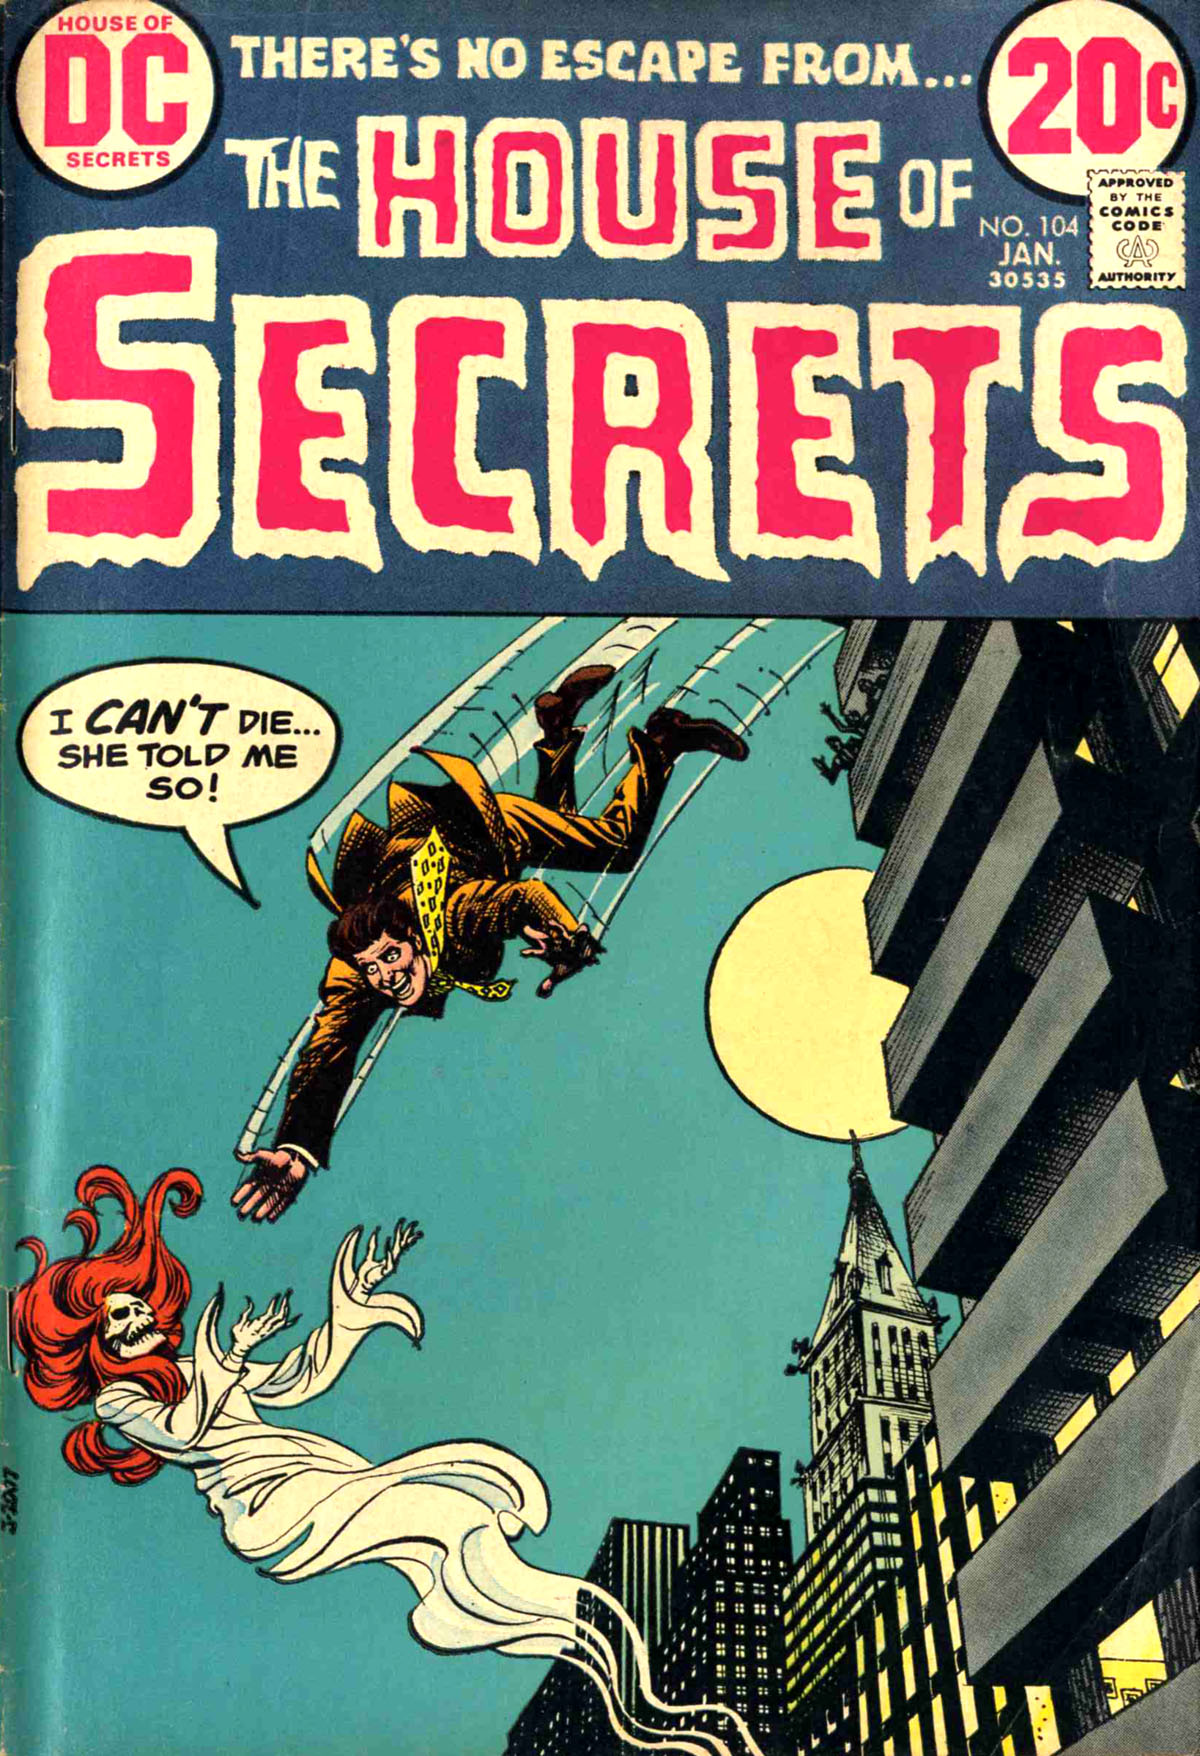 House of Secrets (1956) #104, cover by Nick Cardy.